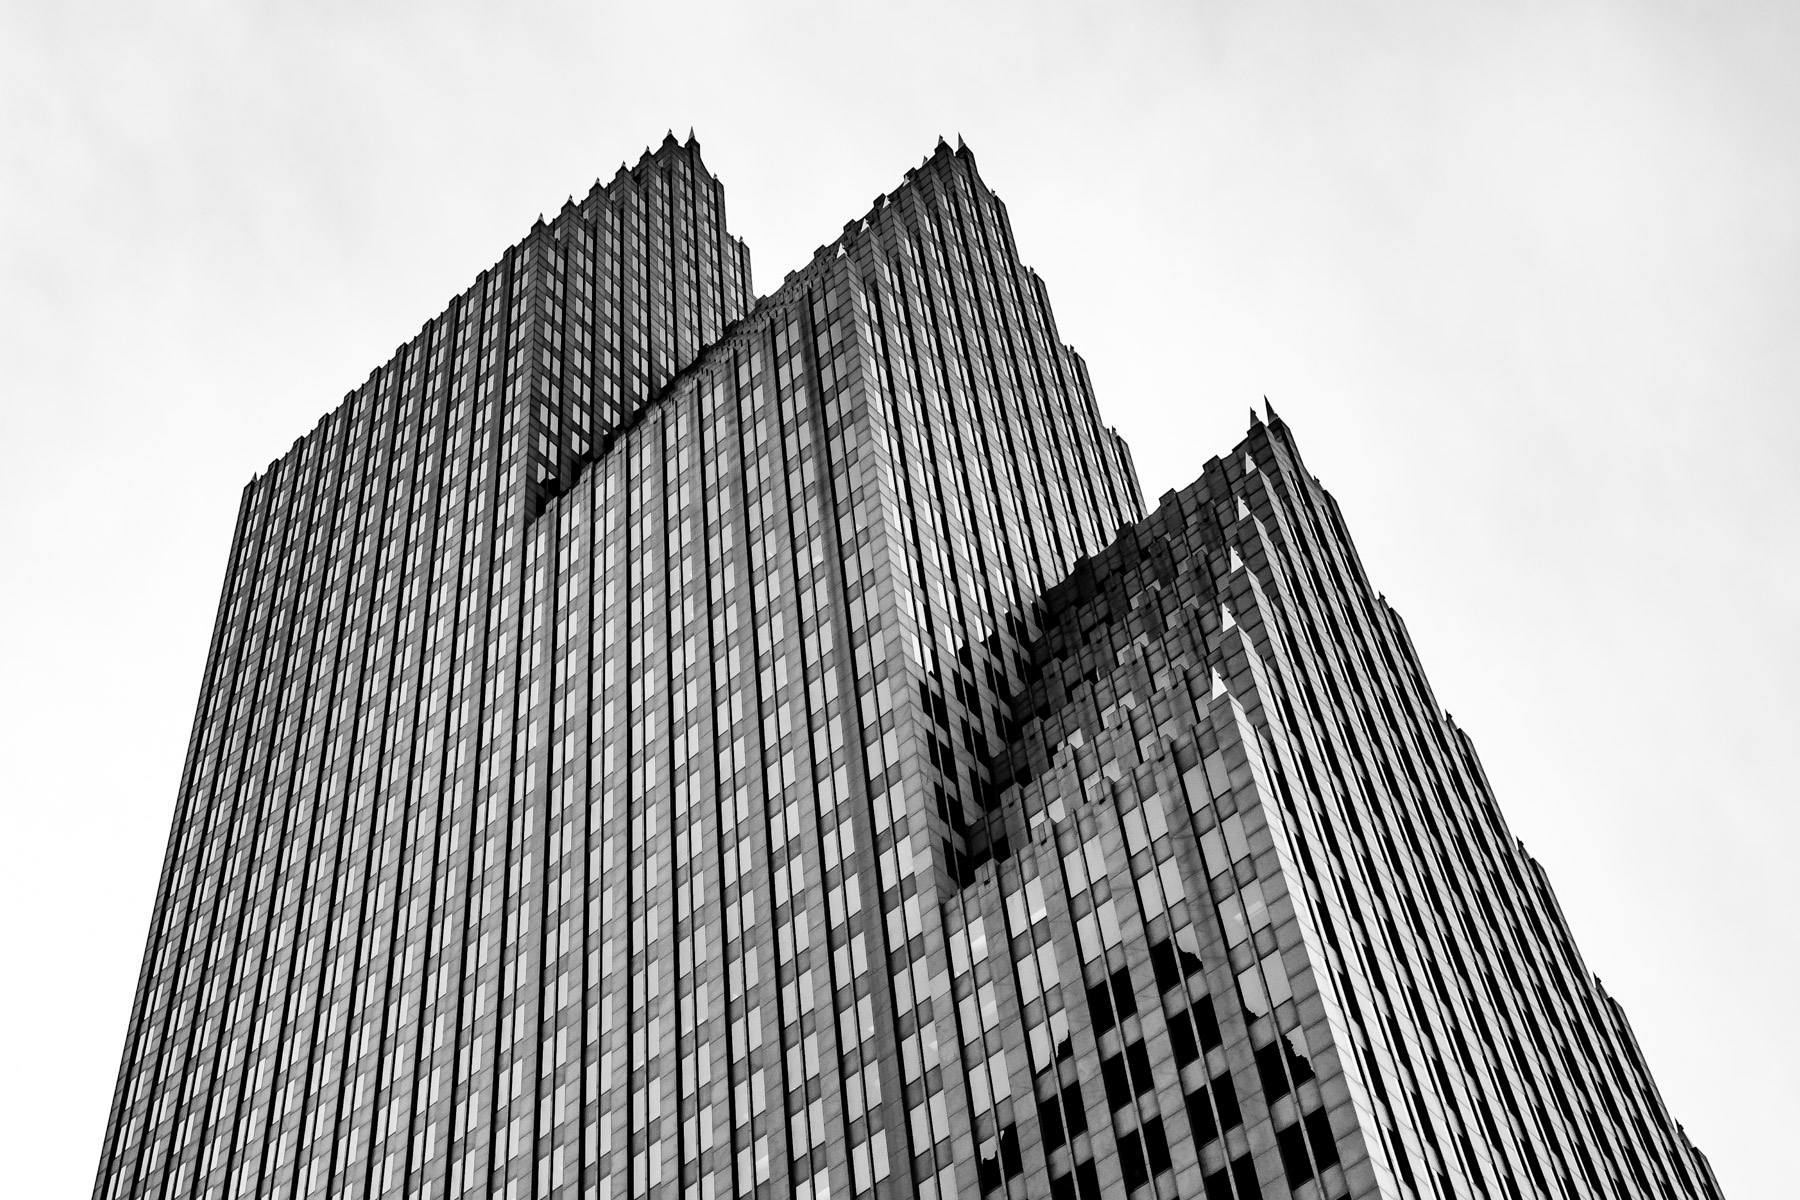 The Philip Johnson-designed, 780-foot-tall Bank of America Center rises into the sky over Downtown Houston.